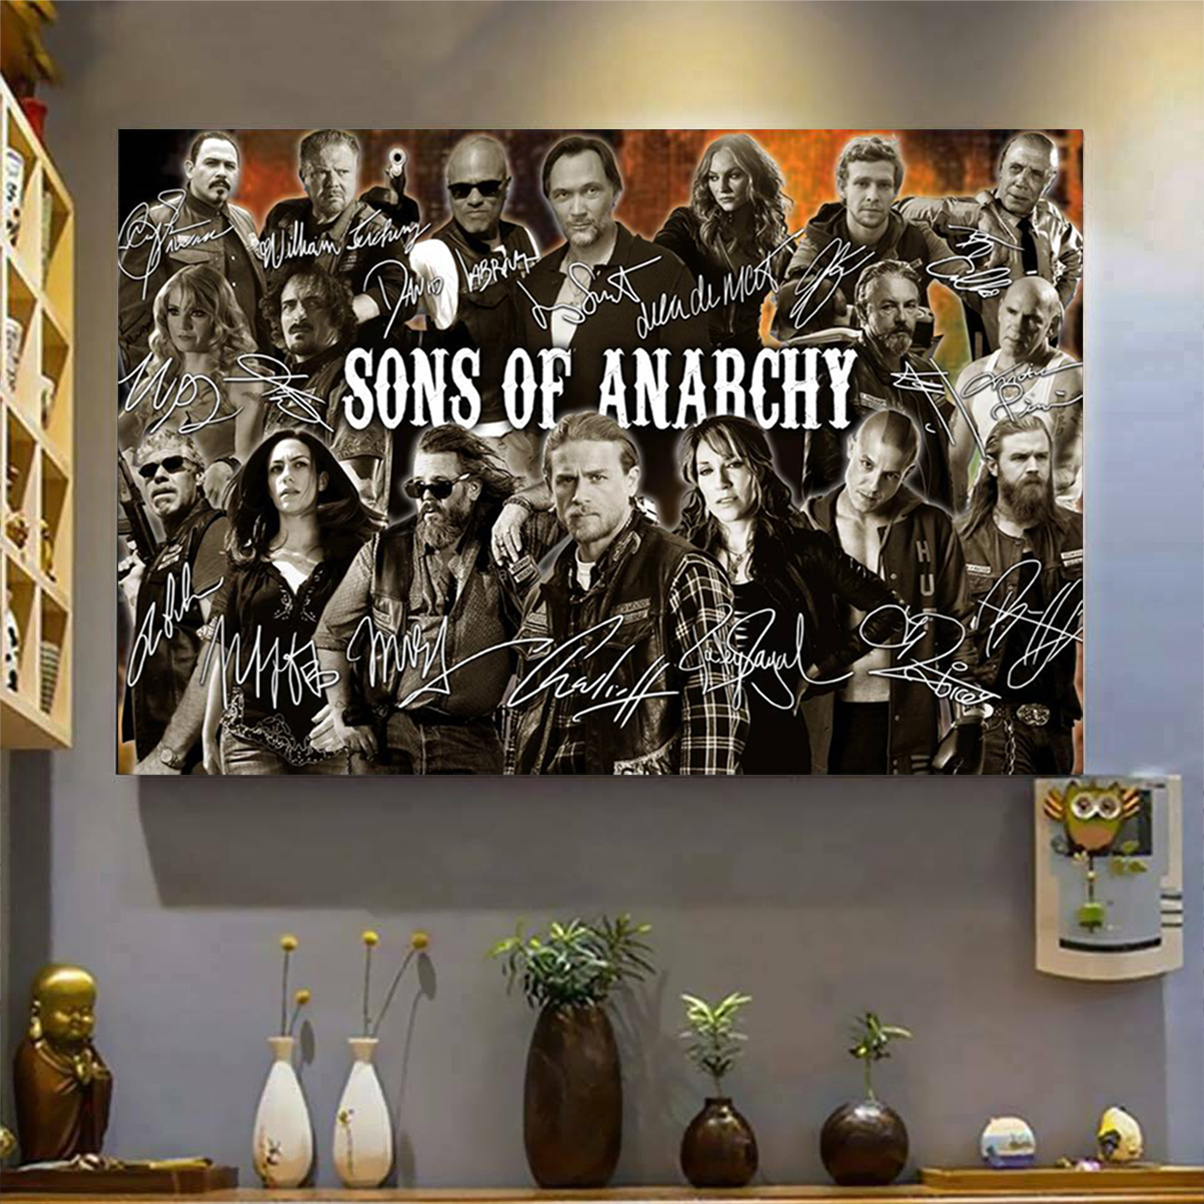 Sons of anarchy signature poster A1